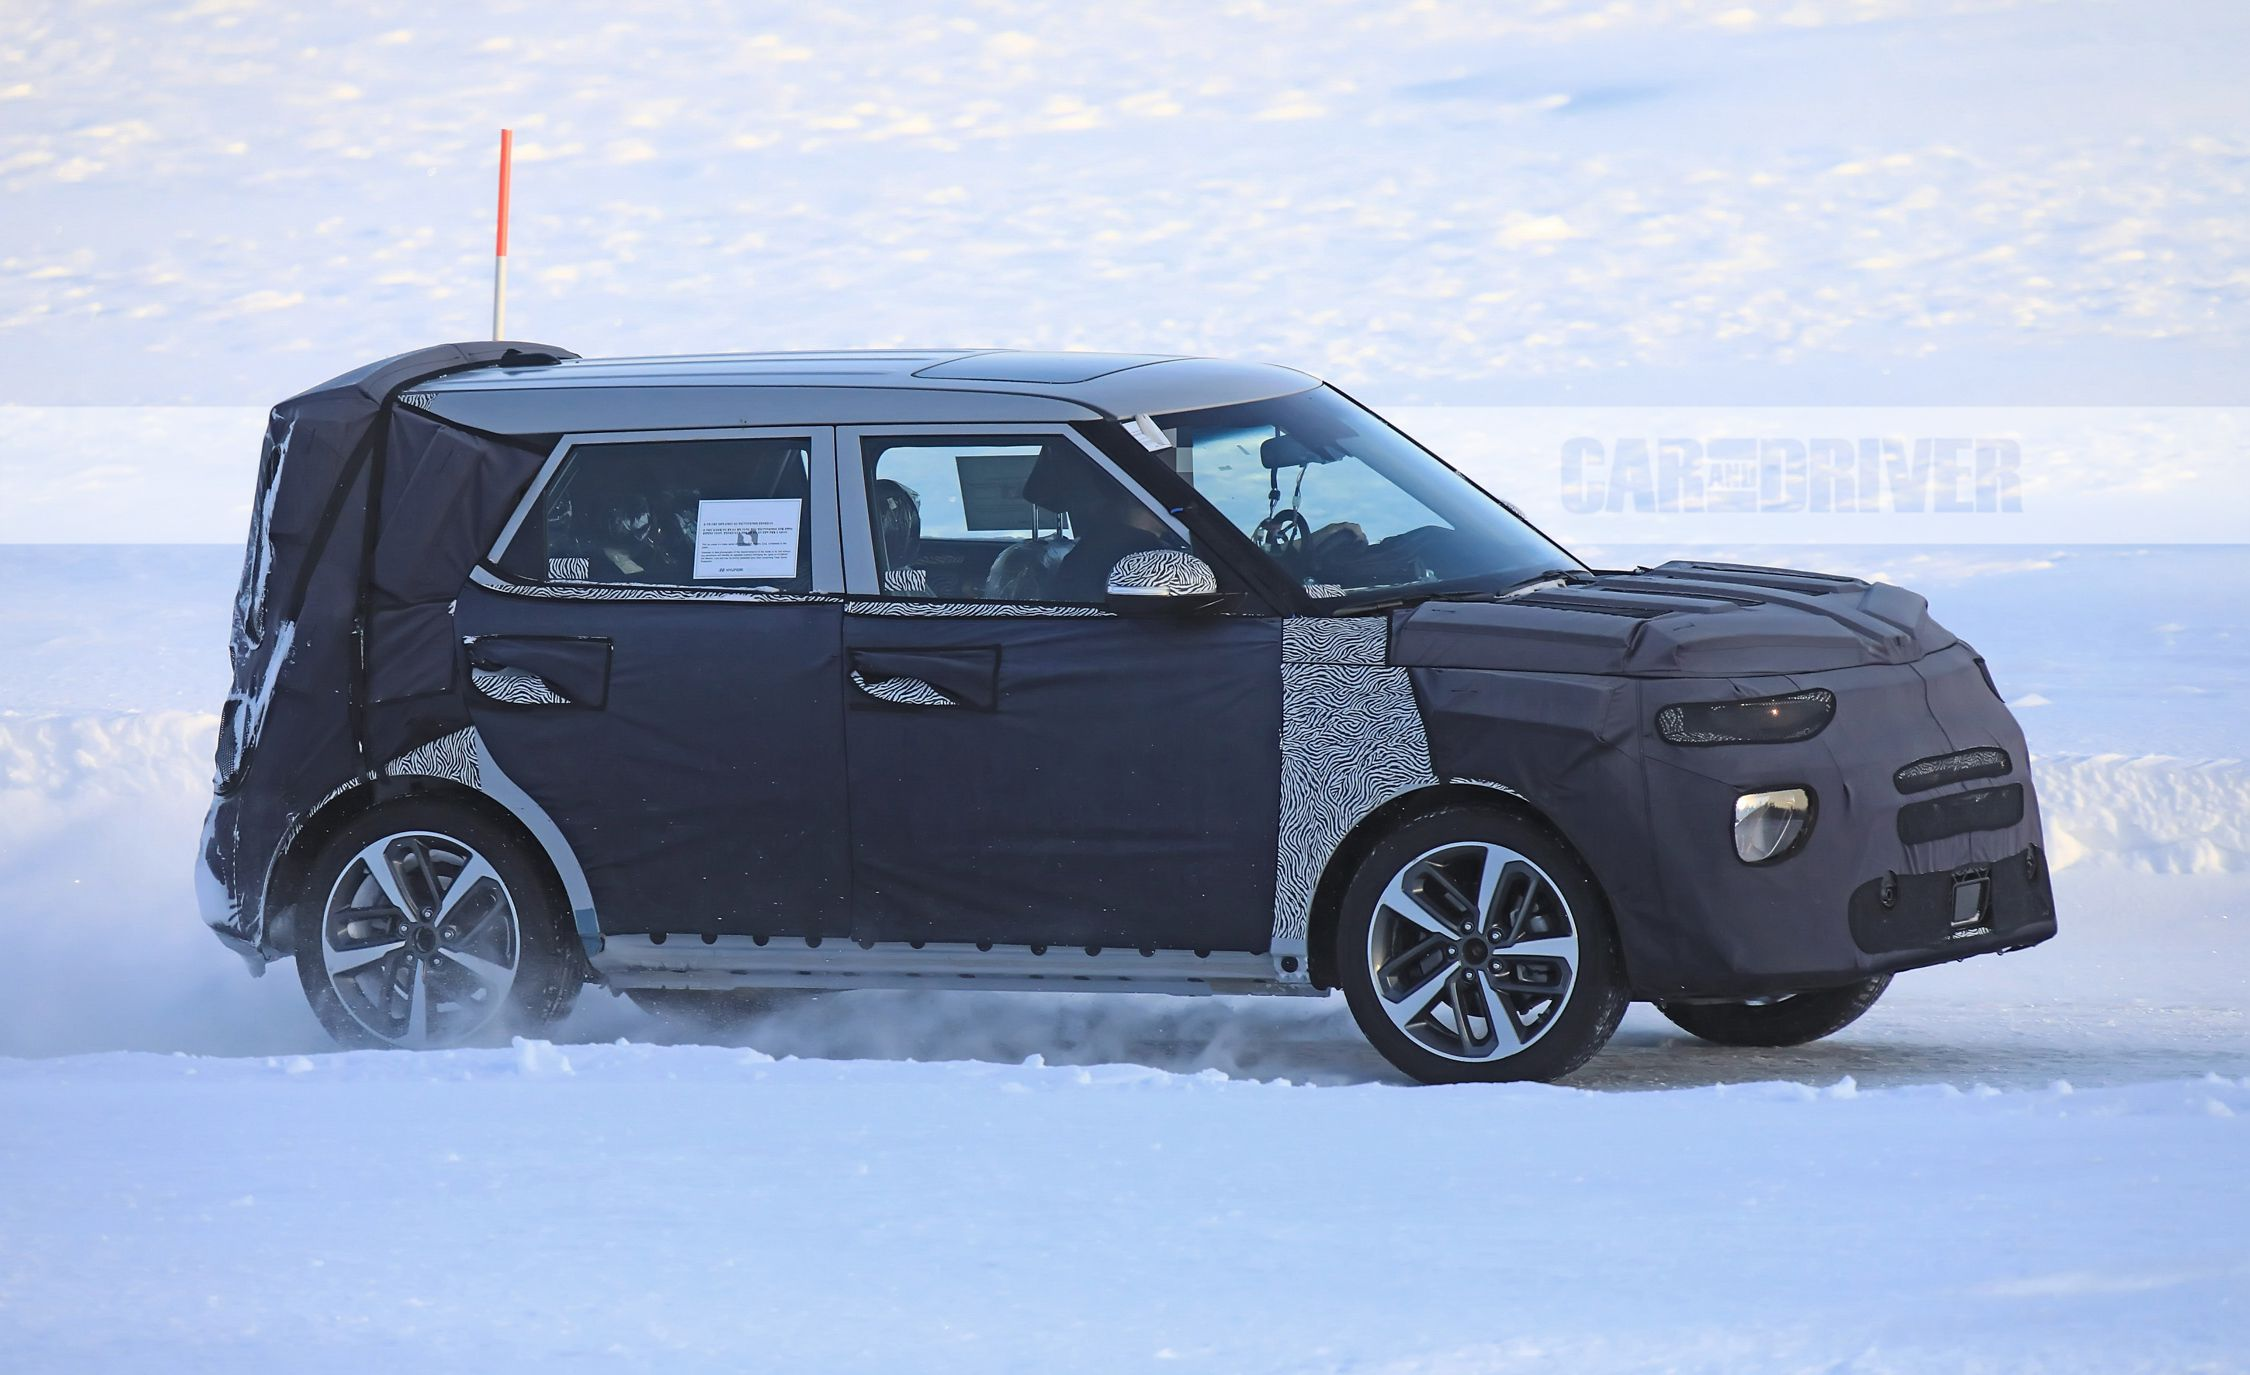 79 The Best 2020 All Kia Soul Awd Price